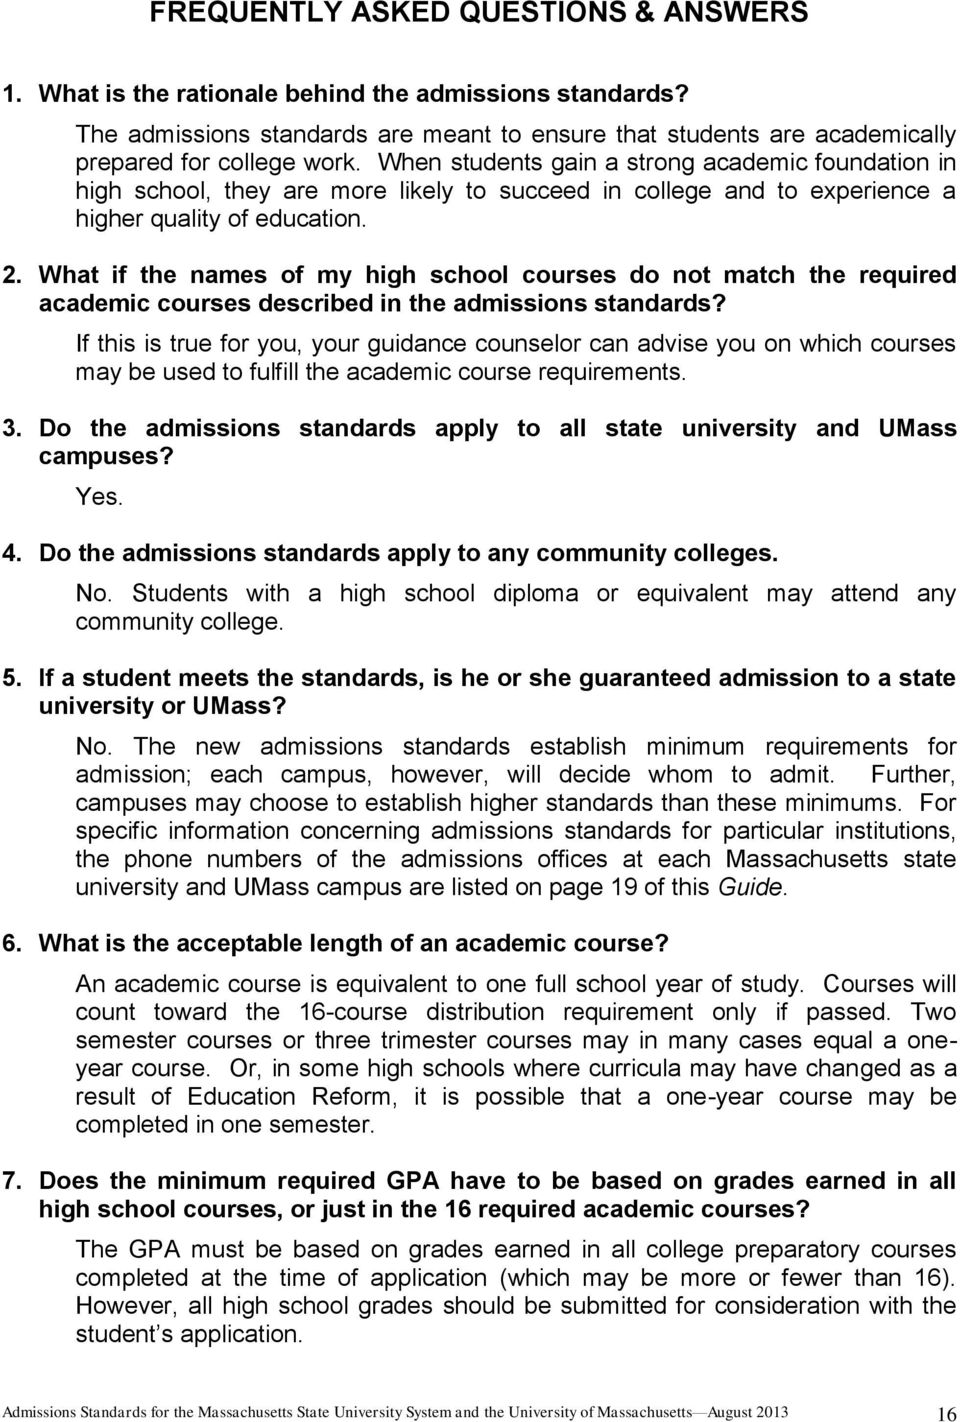 What if the names of my high school courses do not match the required academic courses described in the admissions standards?